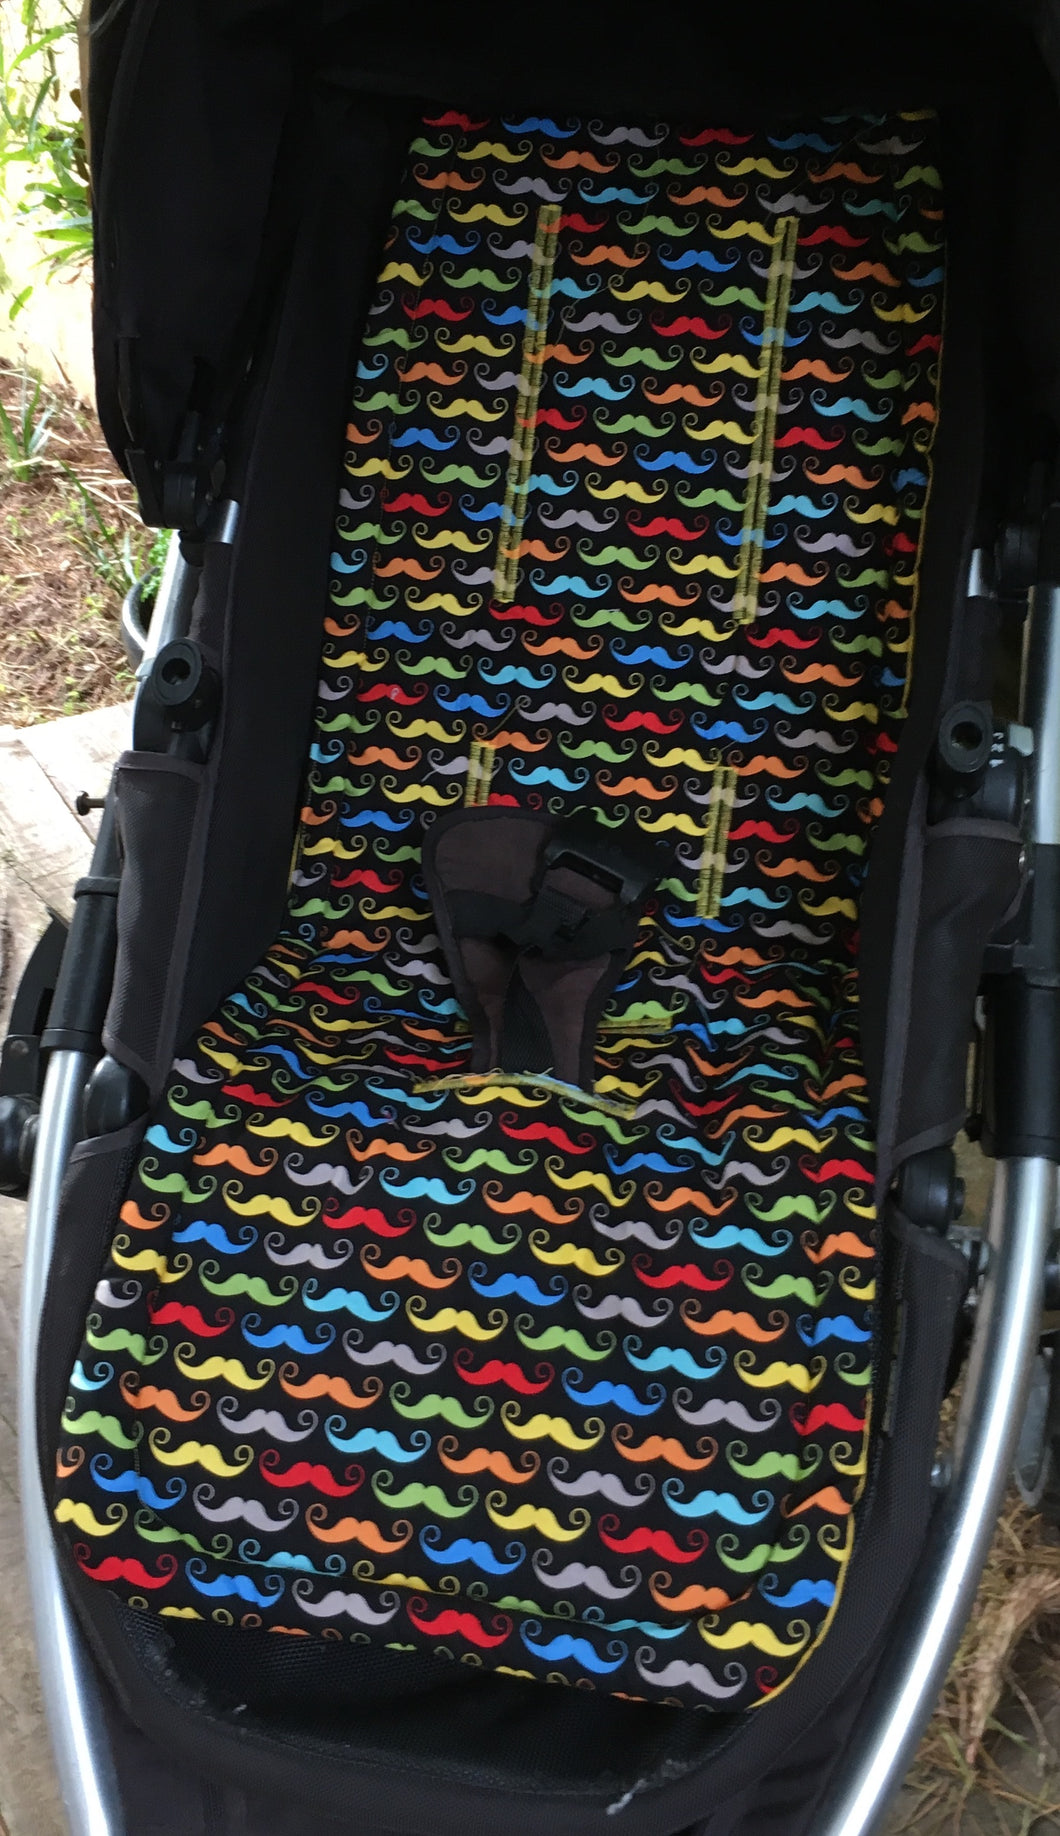 Universal liner-multi coloured moustaches - Percy and Paige tiny traveller footmuff pram blanket best footmuffs universal footmuff australian made footmuffs warm and practical